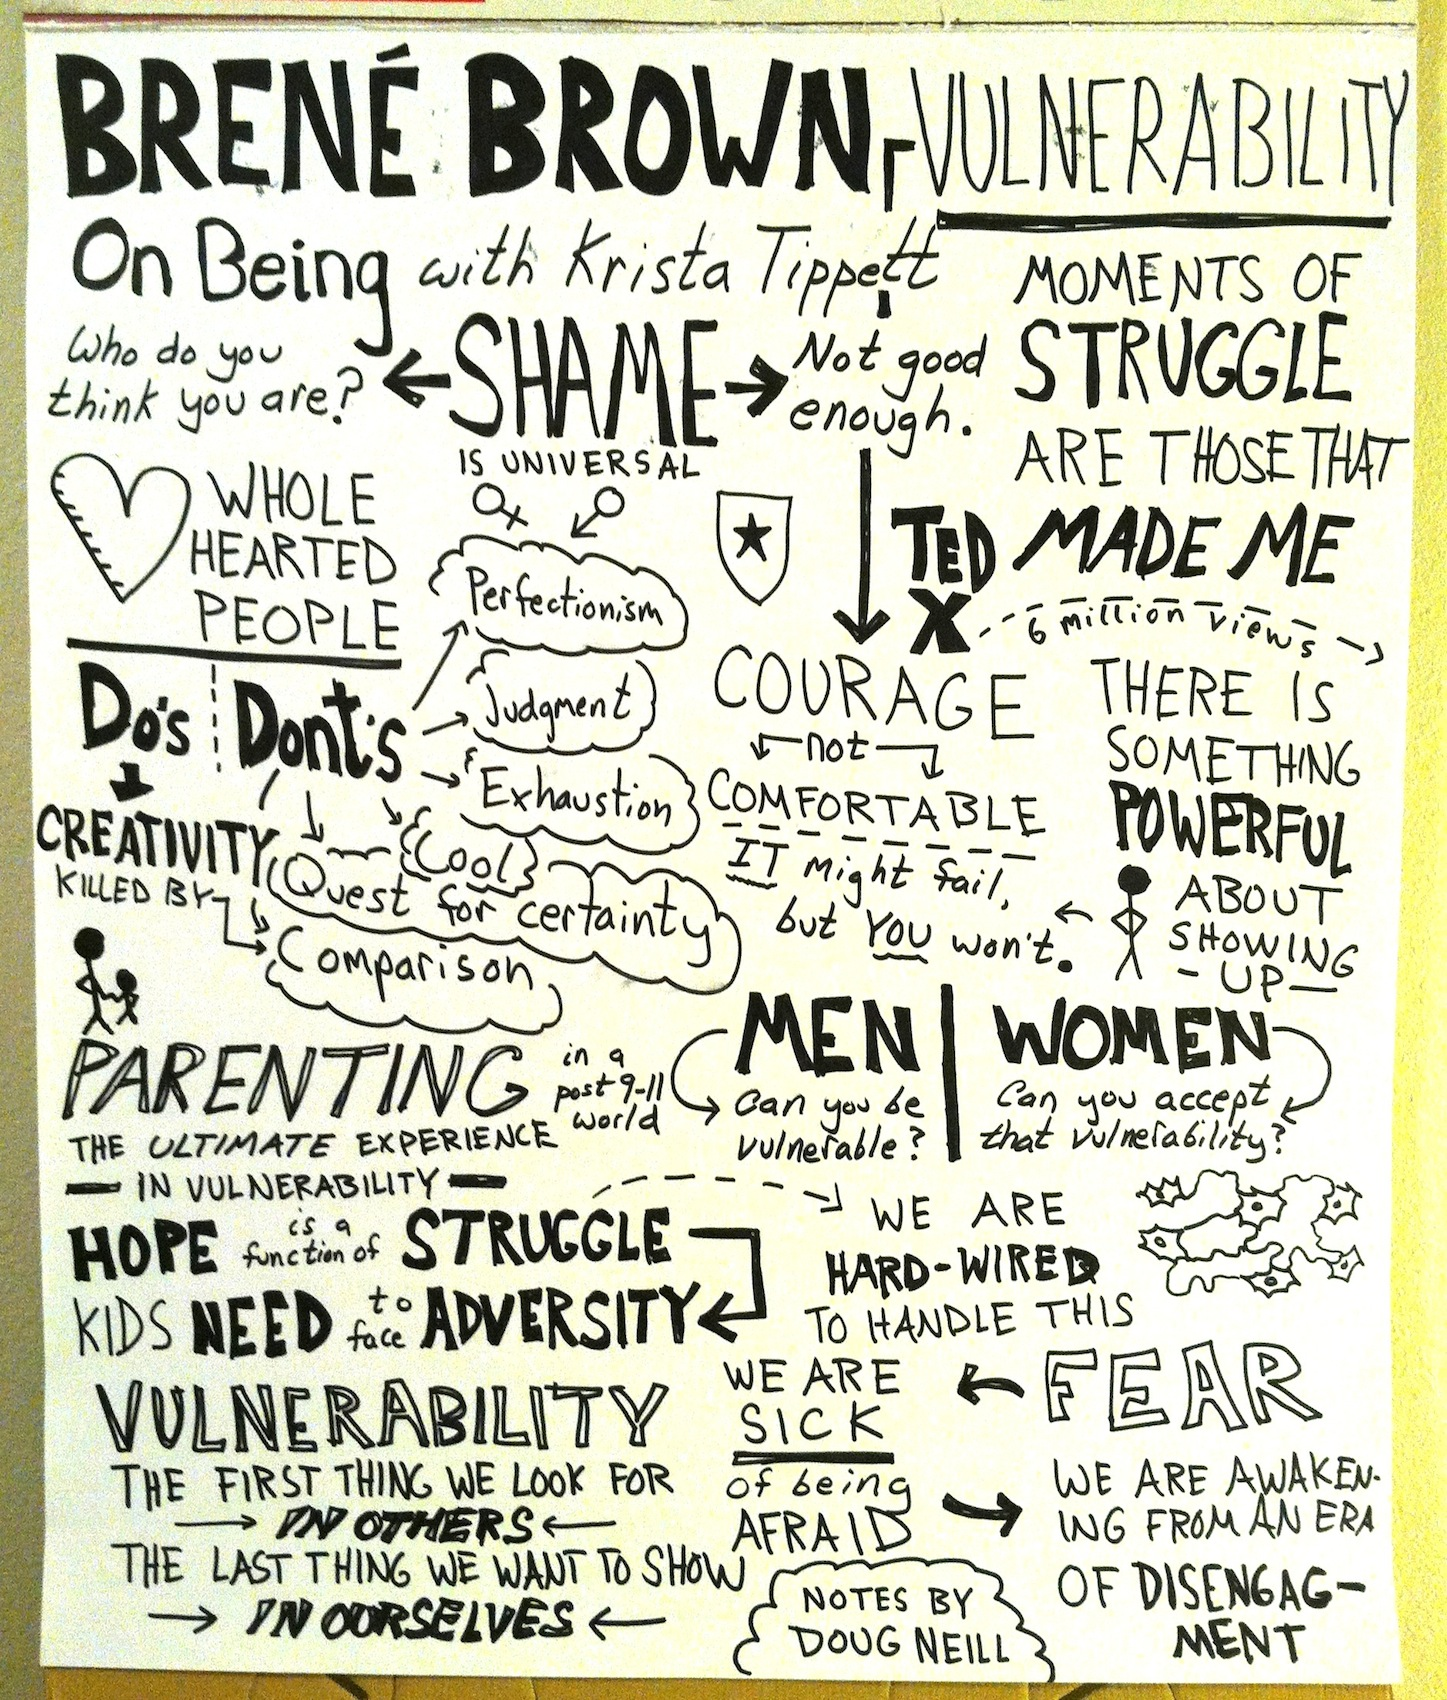 Brene Brown On Being Krista Tippett Graphic Recording - Doug Neill - vulnerability, hope is a function of struggle, kids need to face adversity, courage